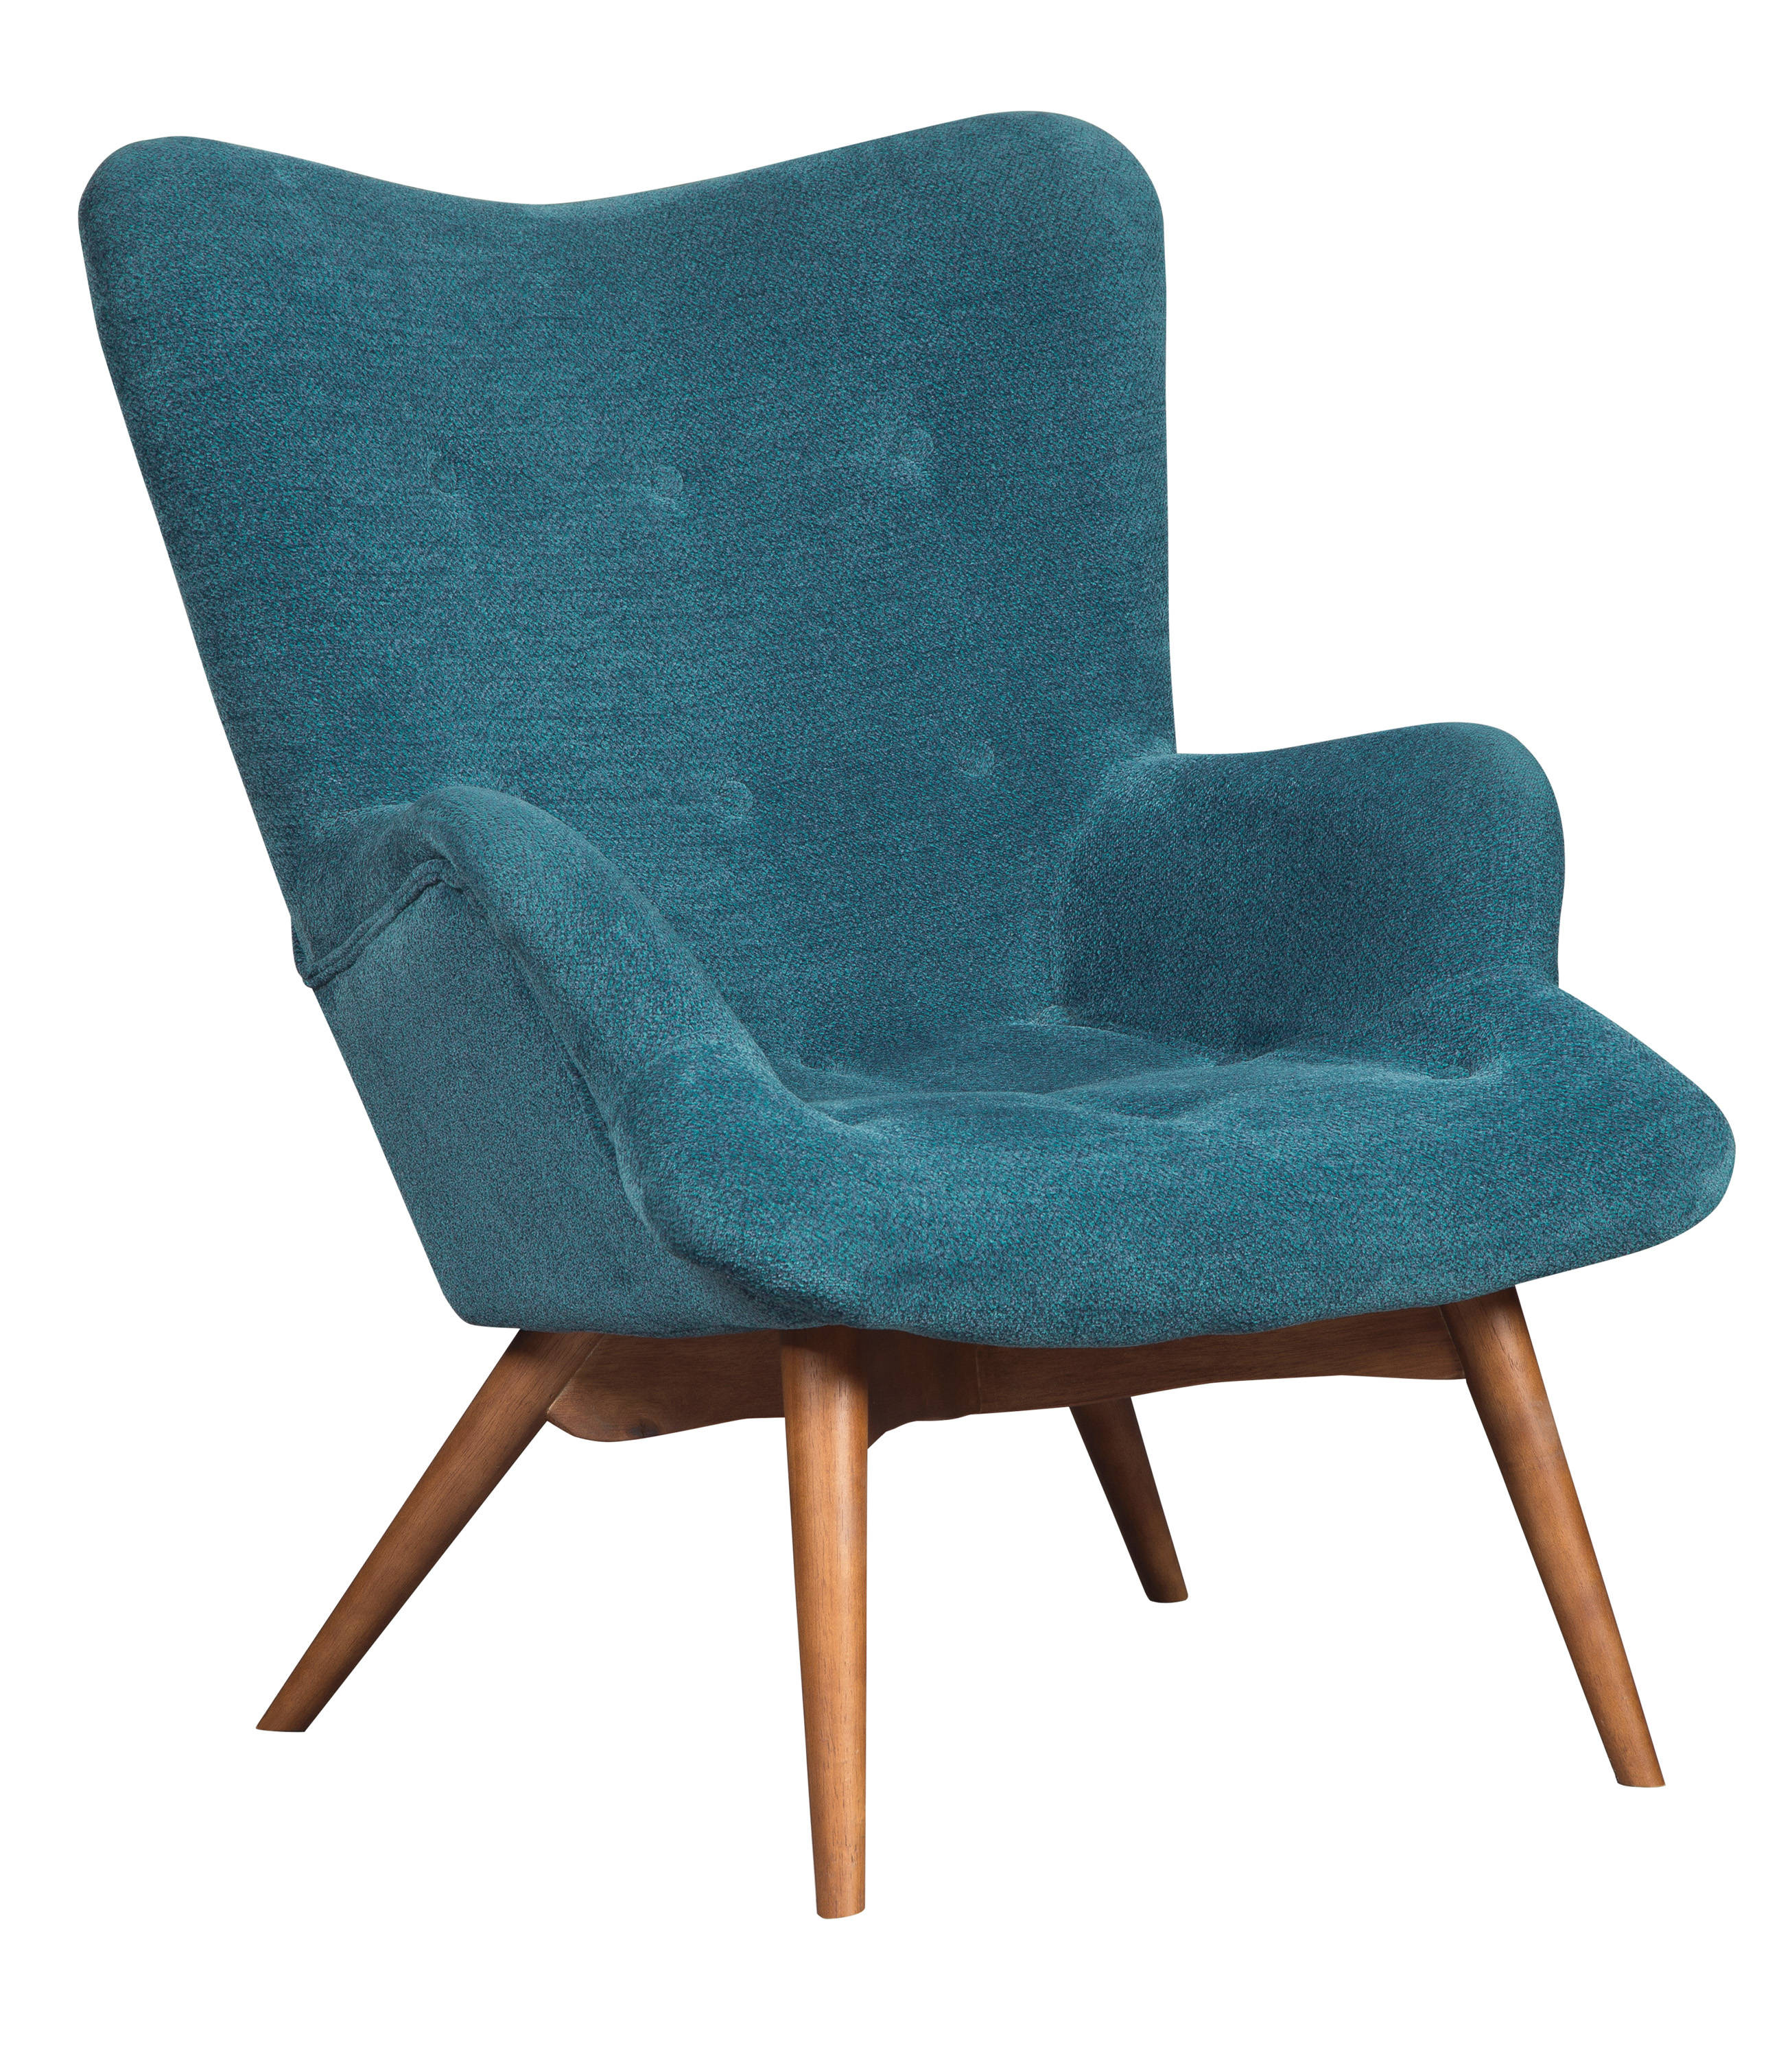 1950s Accent Chairs.Ashley Furniture Pelsor Turquoise Accent Chair The Classy Home